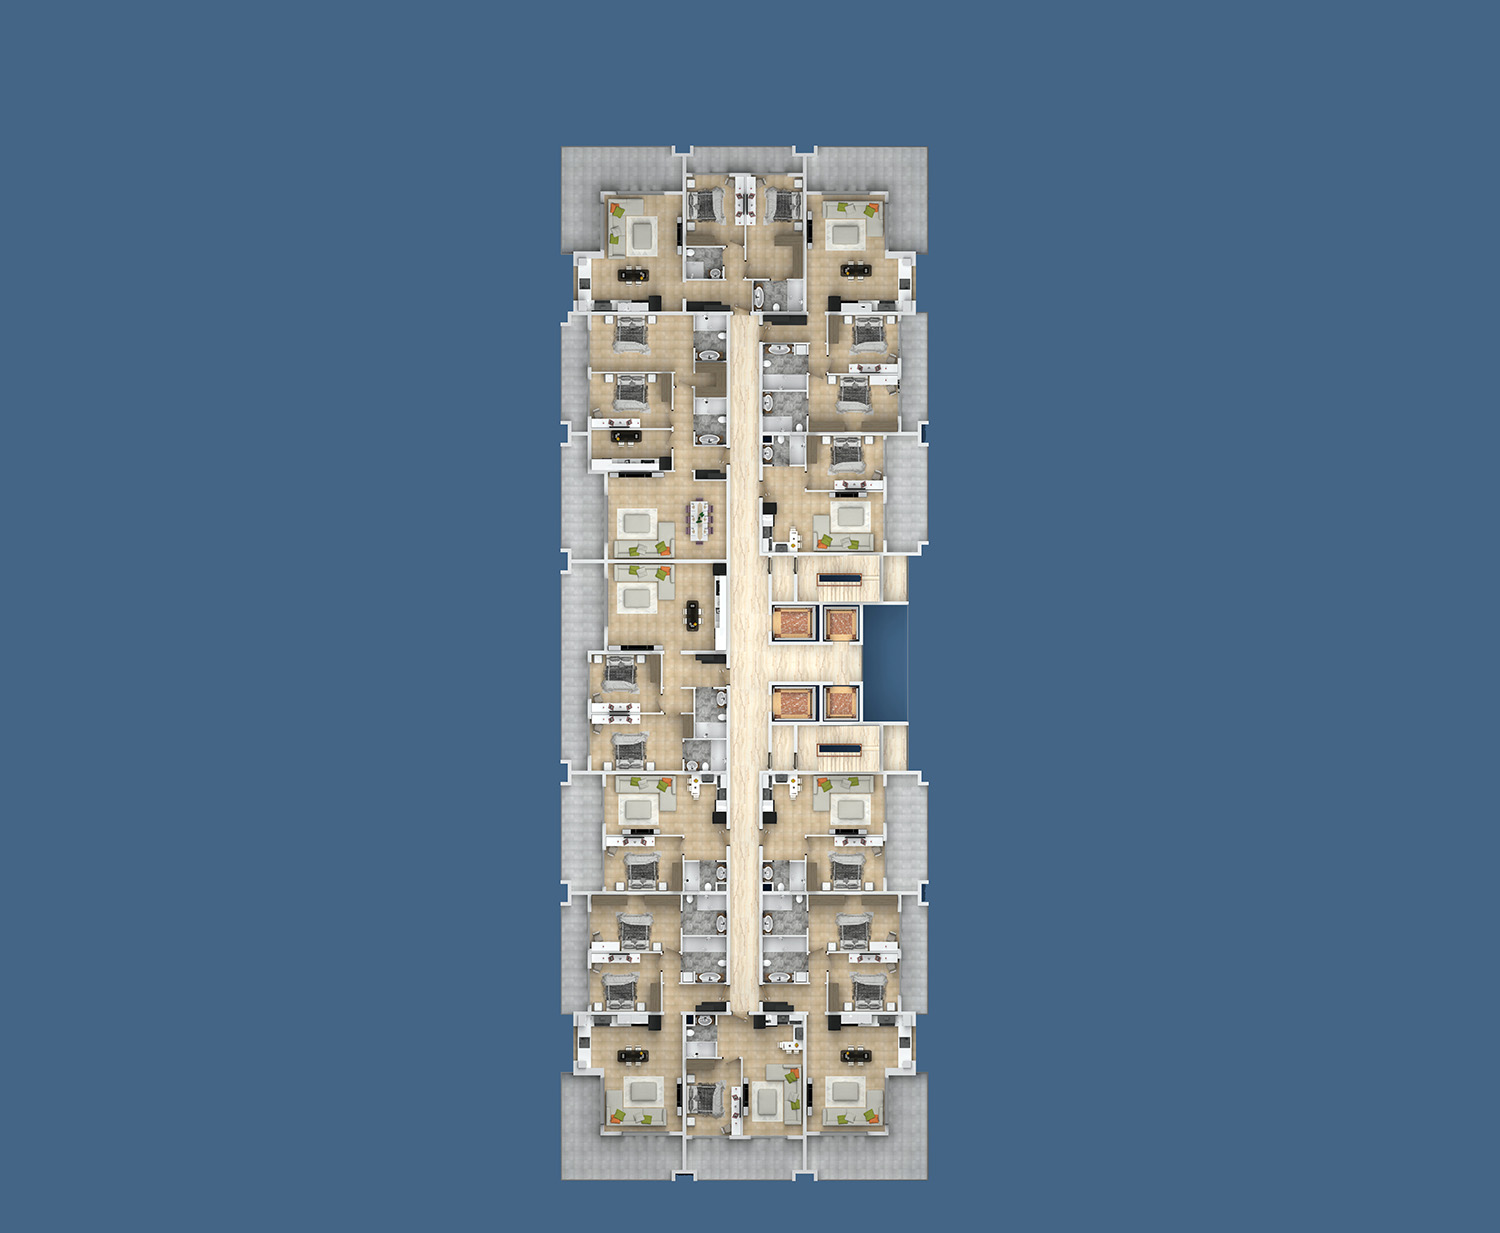 Floor plans of apartments 2 floor «E» Yekta Kingdom Premium